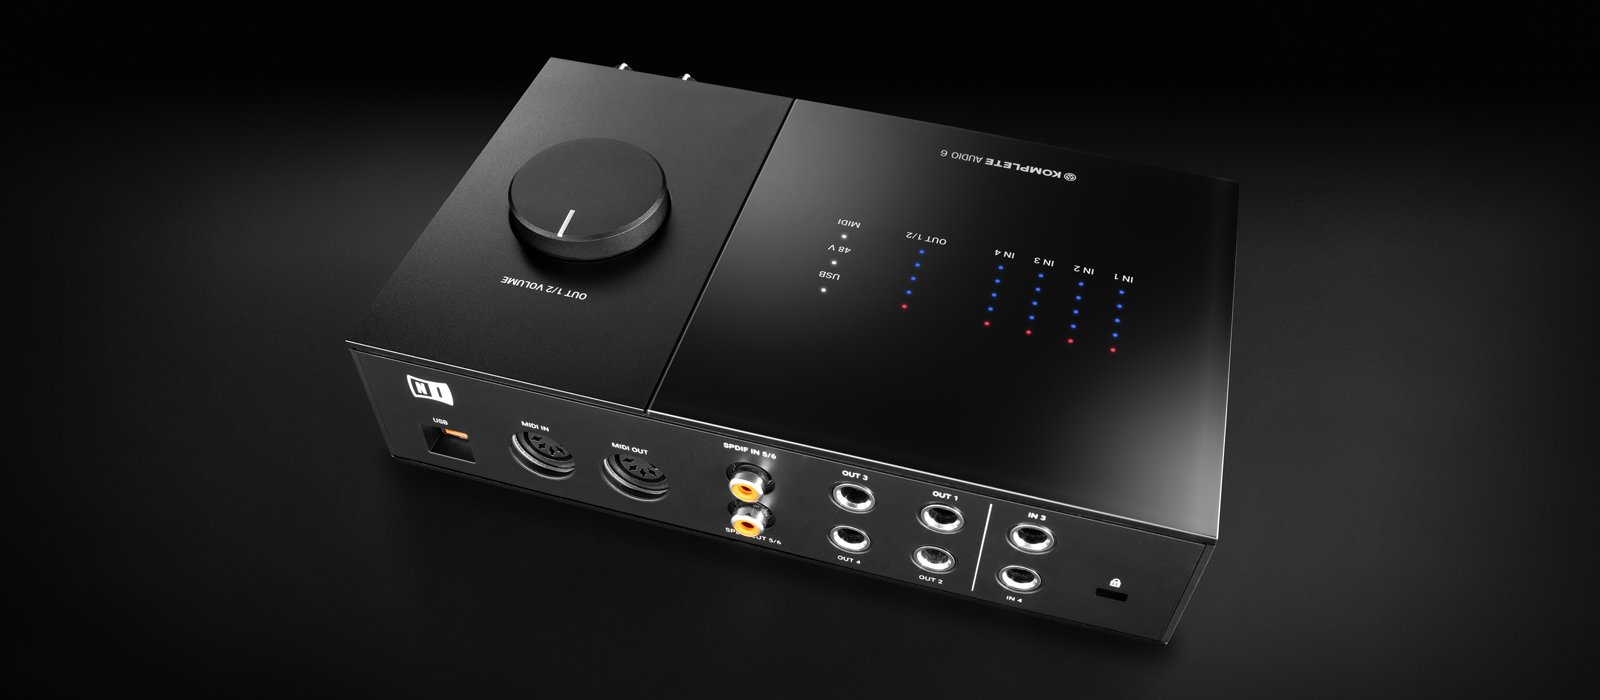 img-ce-gallery-komplete-audio-6-product-page-05-image-gallery-06_01-0df73bec1cc98e2723e26f50a595c940-d